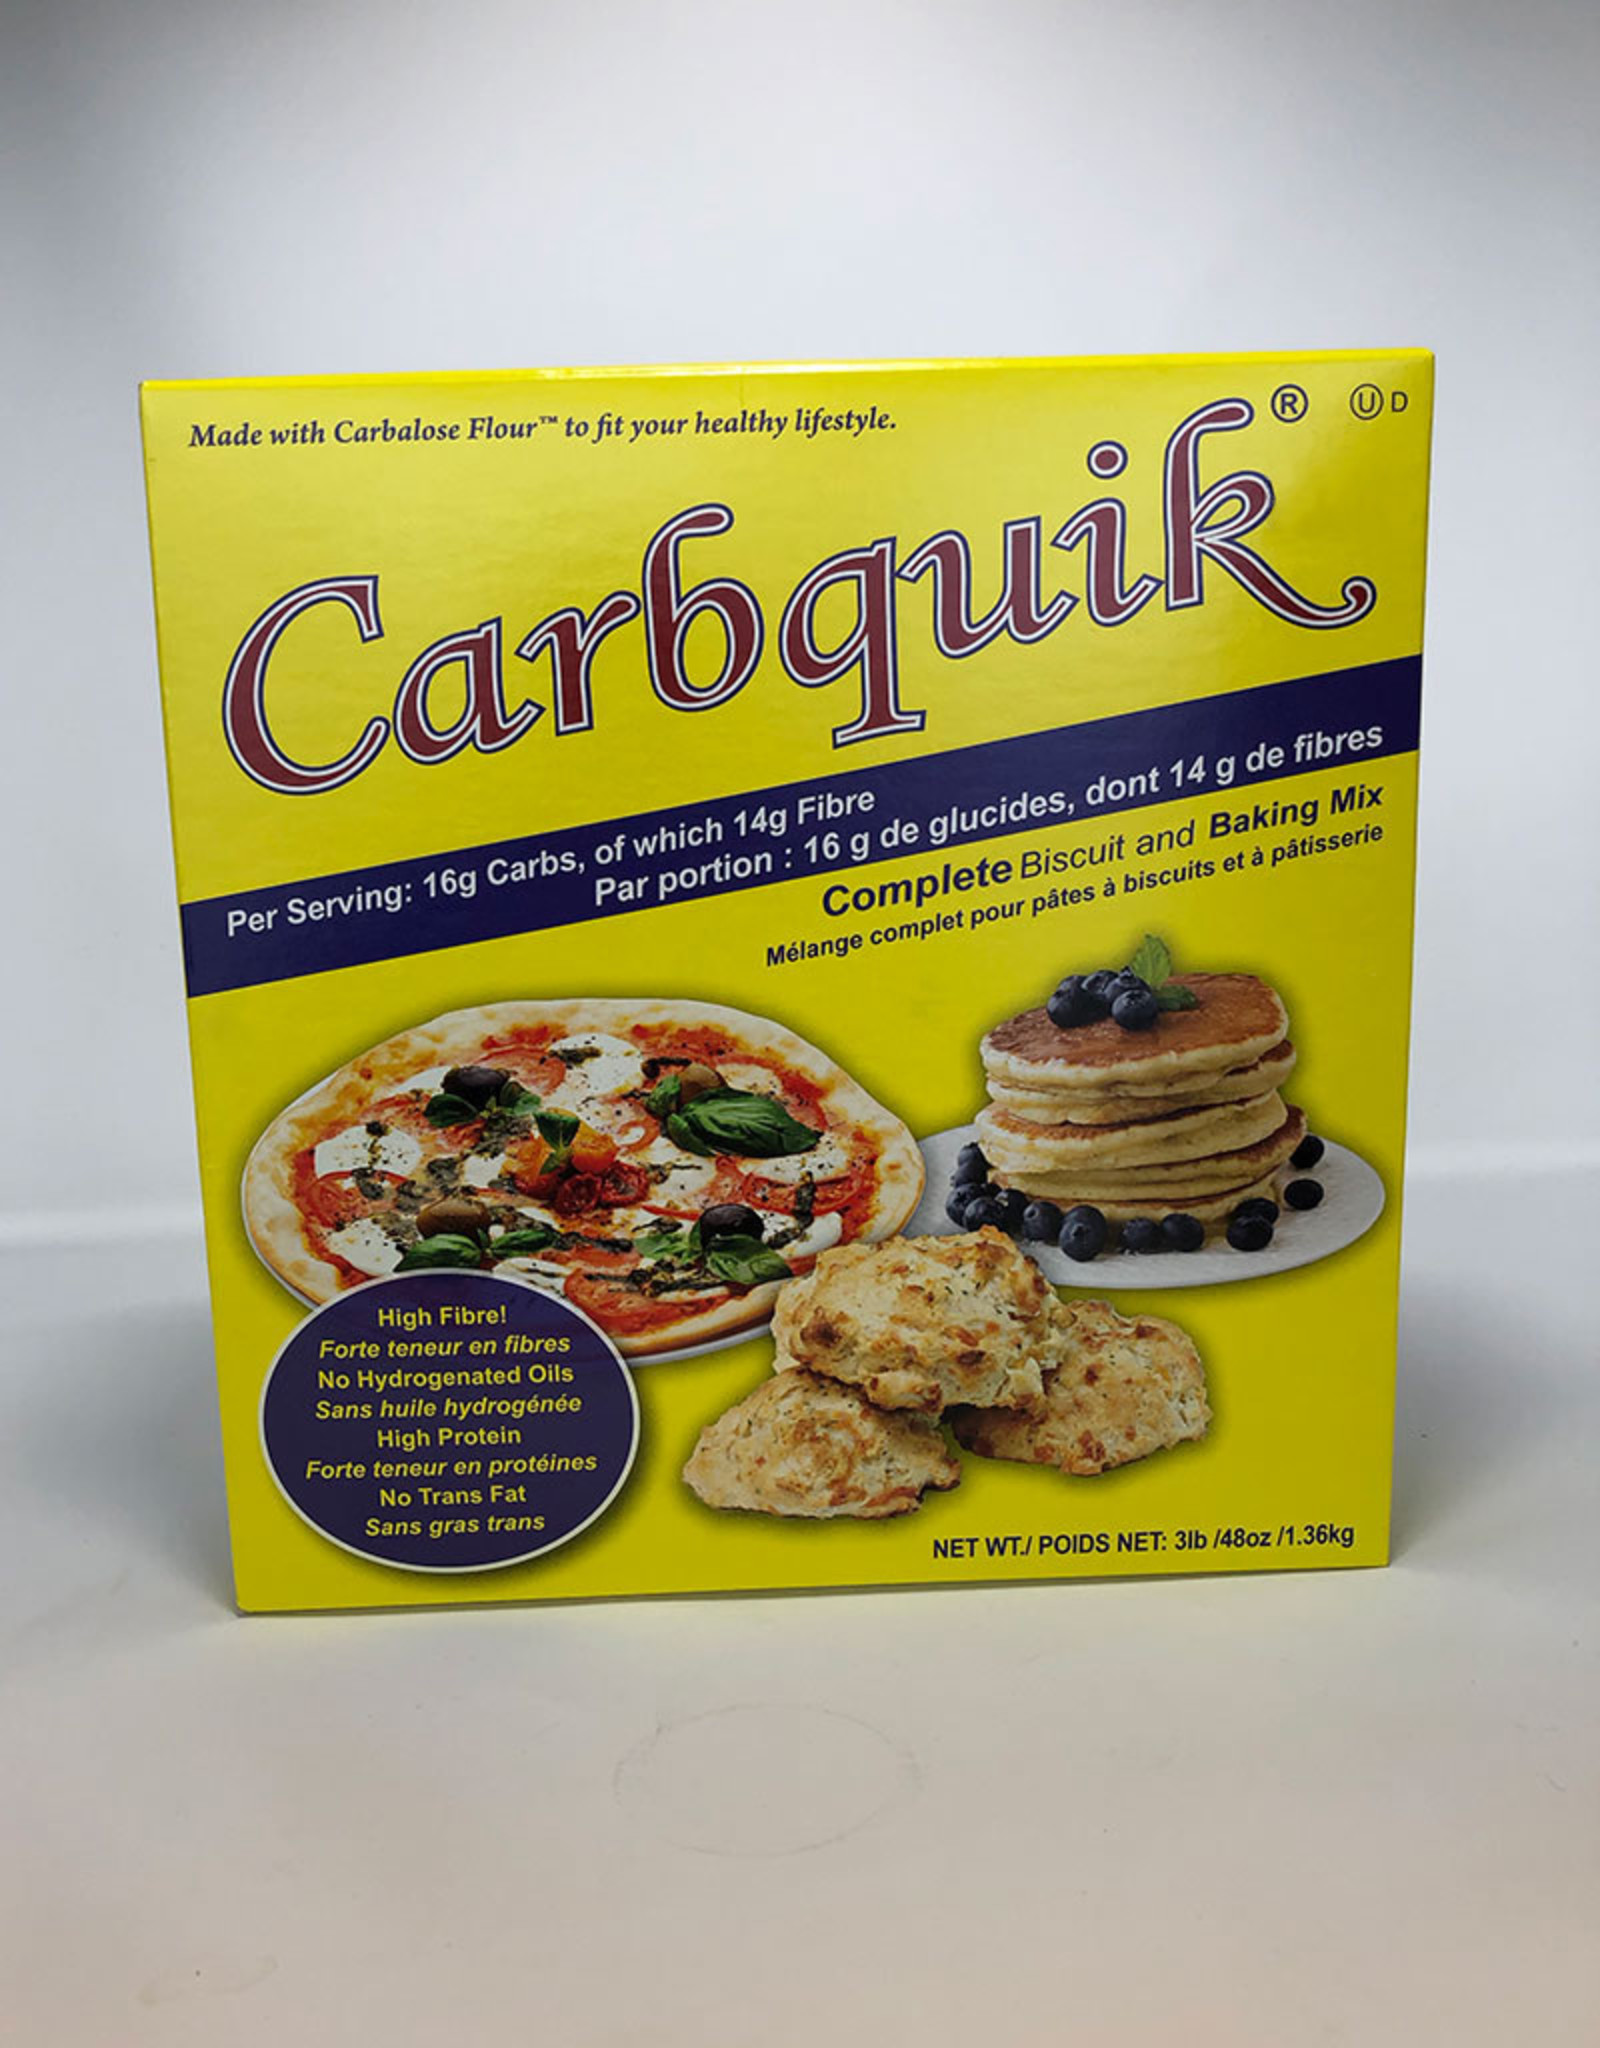 Carbquik Carbquik - Complete Biscuit & Baking Mix (1.36kg)